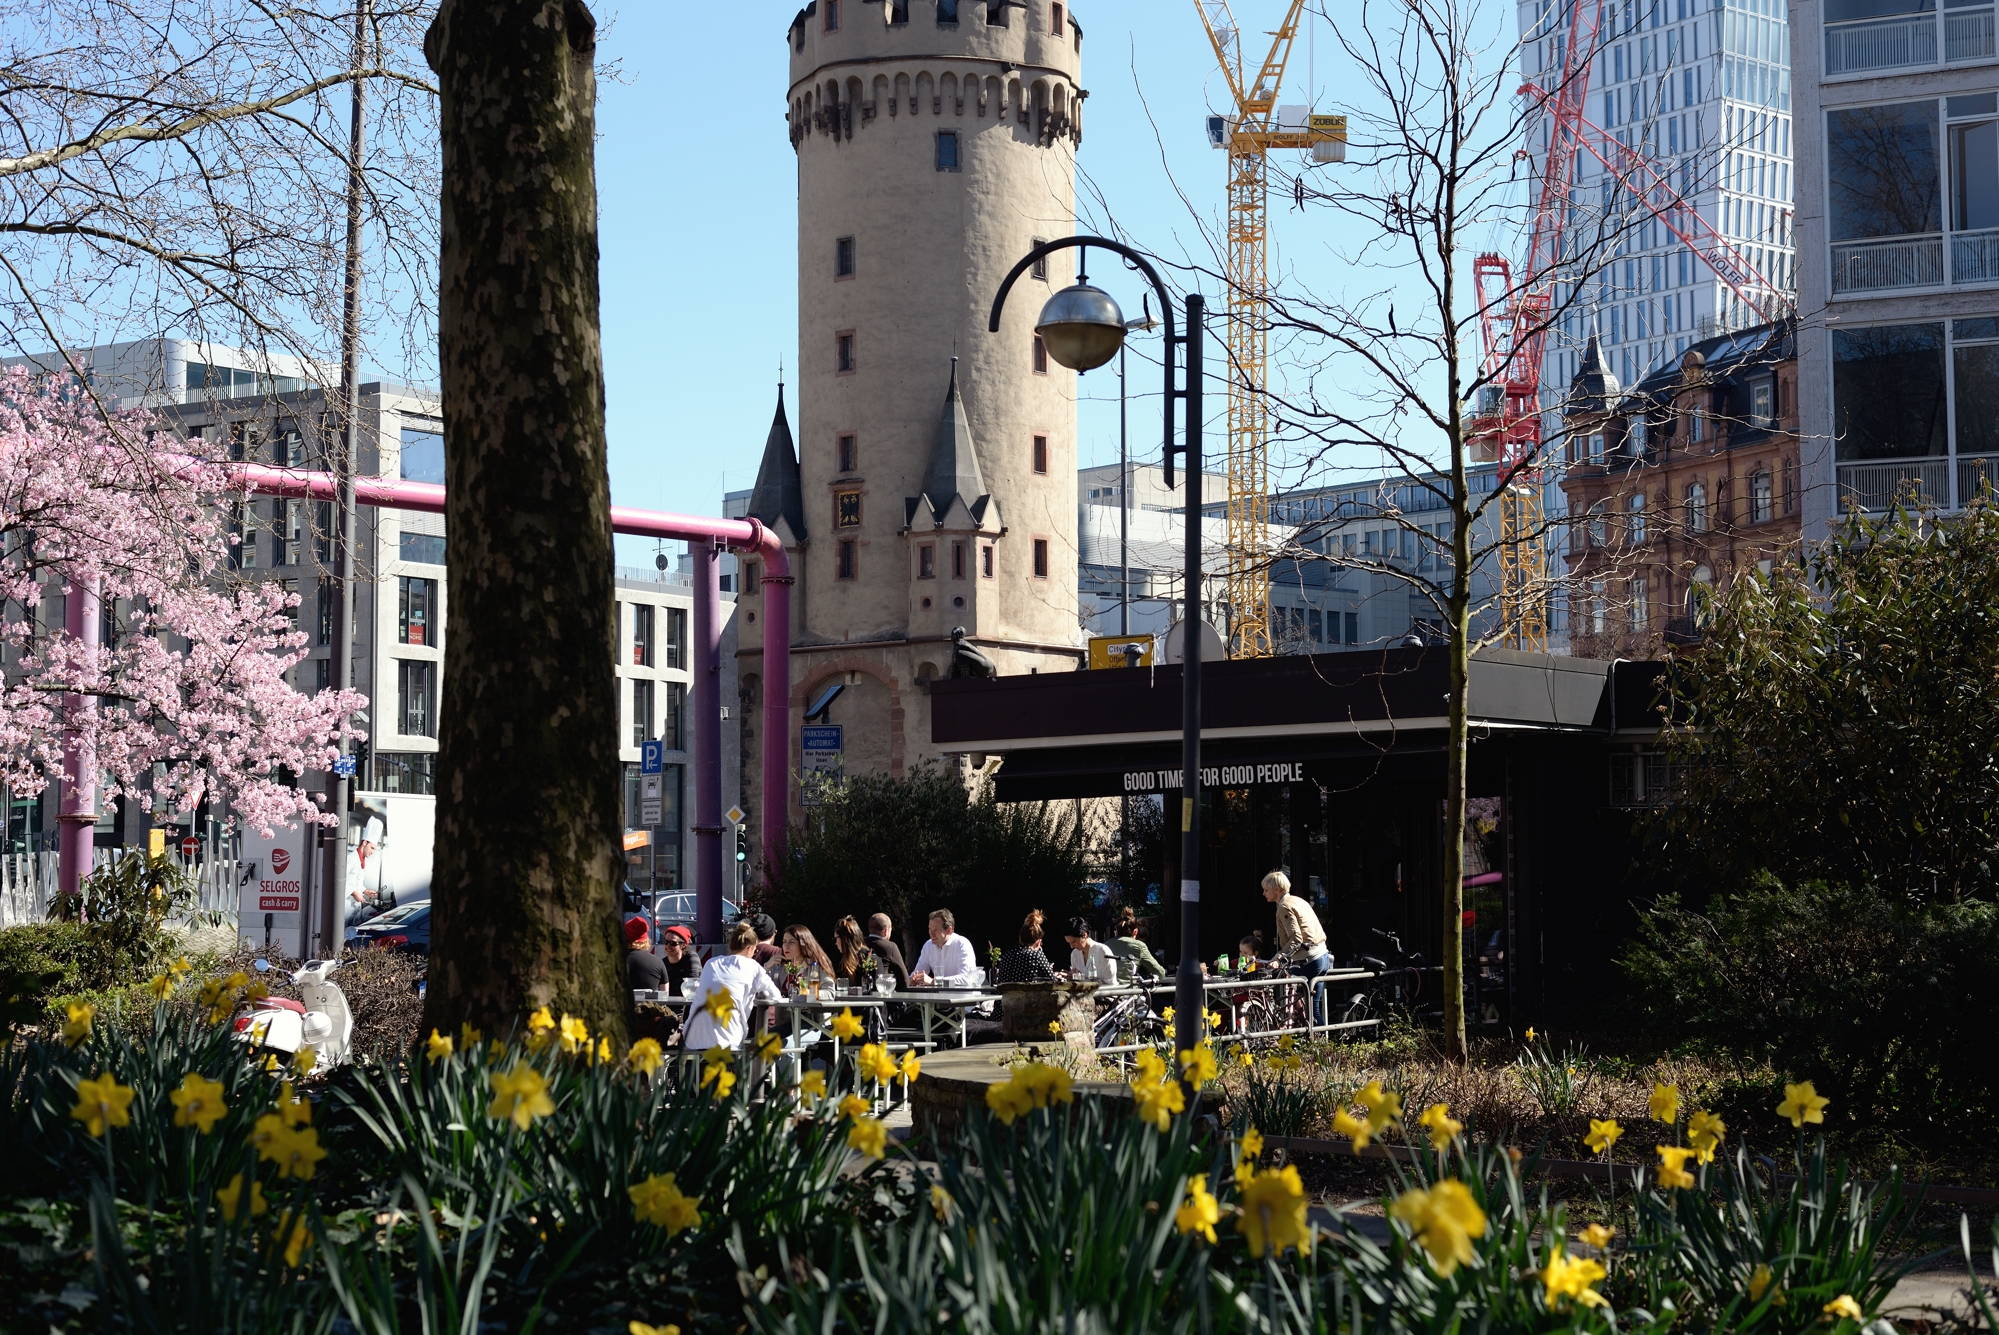 Eschenheimer tower and Good Things cafe